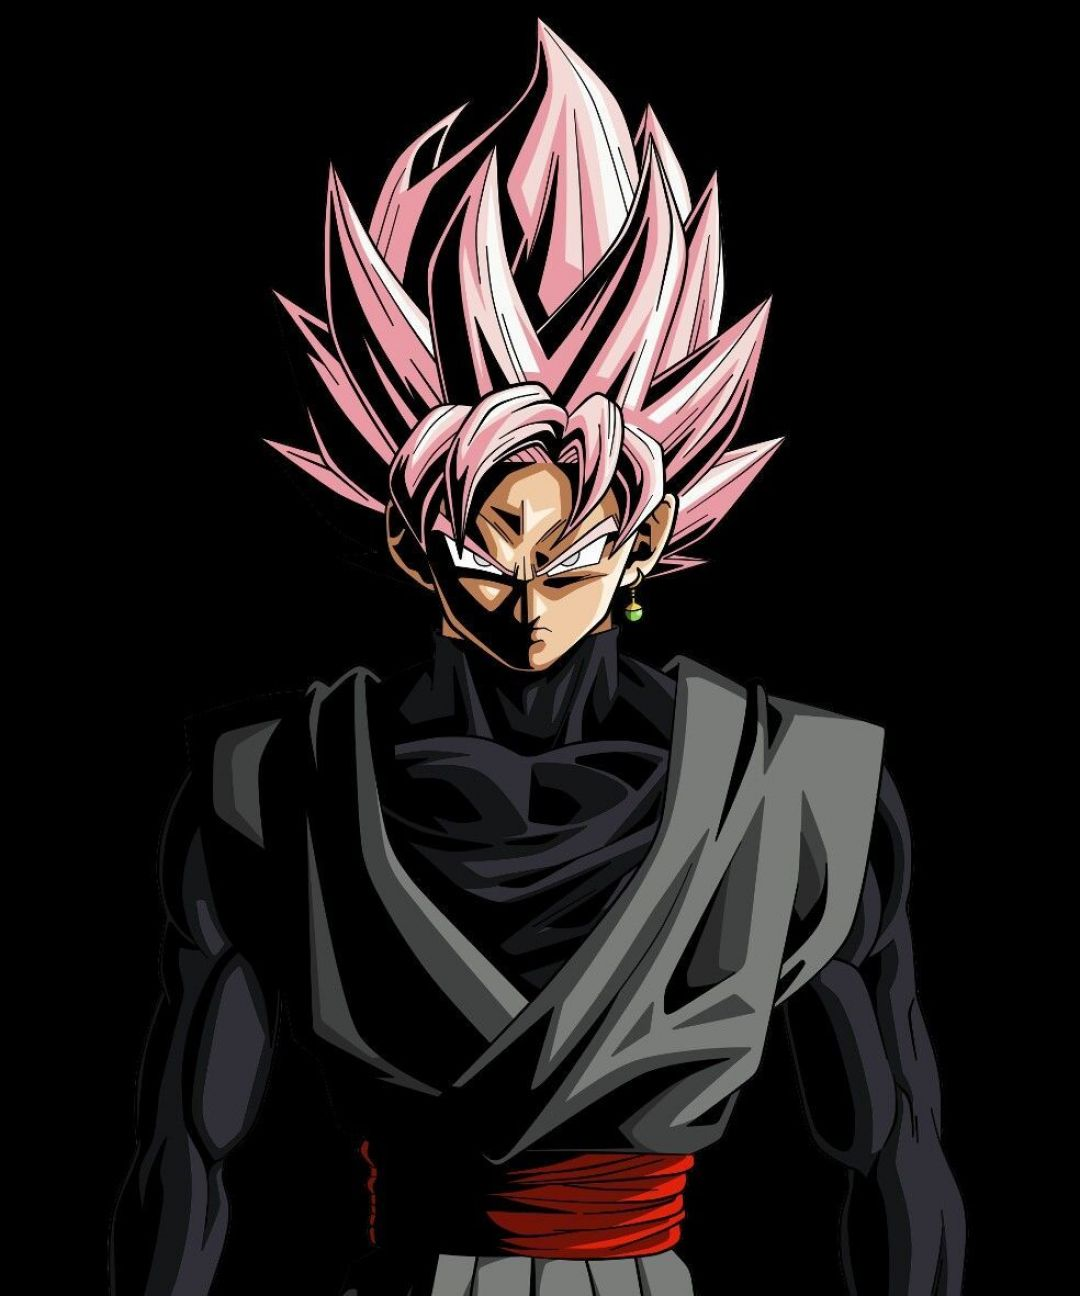 35 Black Goku Android Iphone Desktop Hd Backgrounds